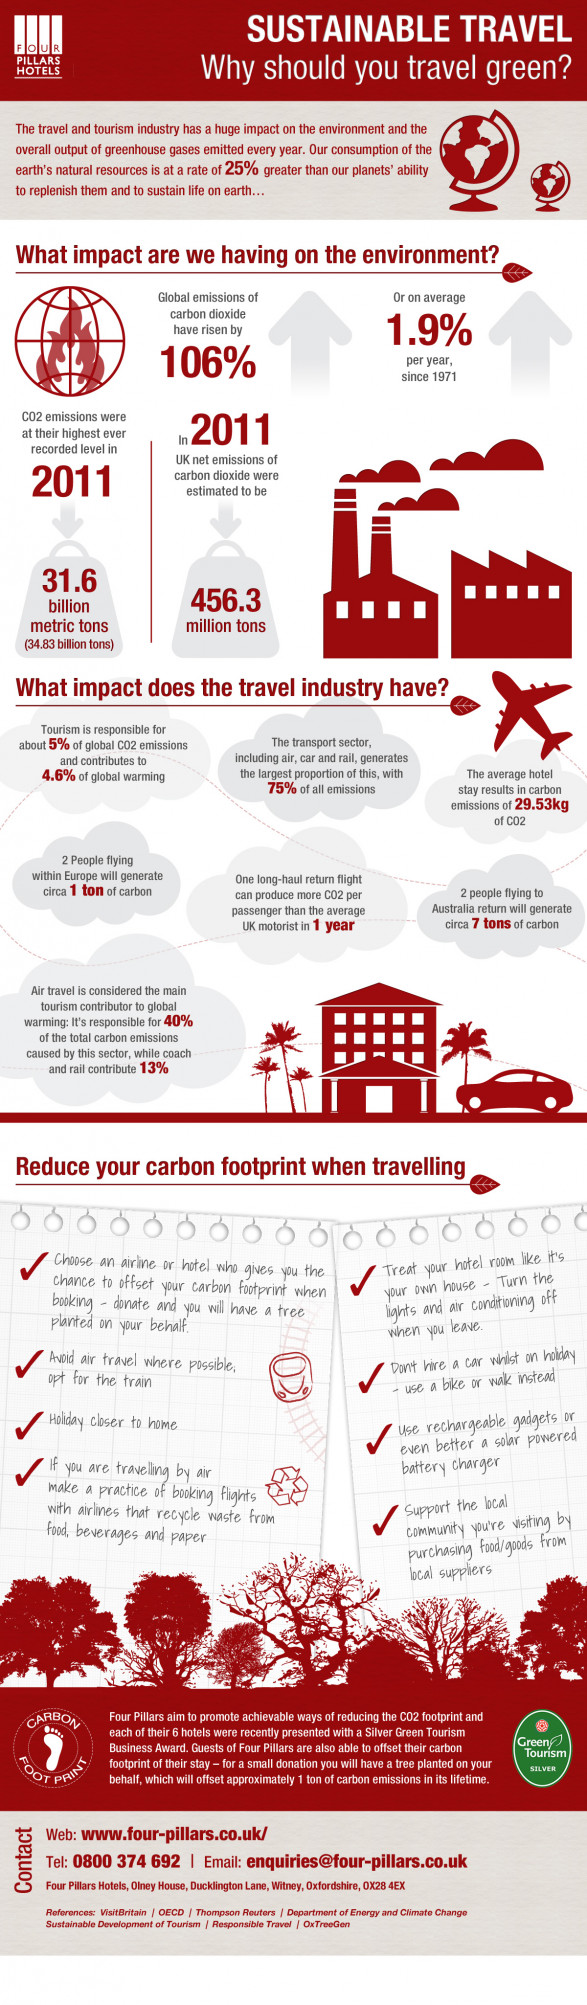 http://thumbnails.visually.netdna-cdn.com/sustainable-travel--why-should-you-travel-green_503dd5f3bd4cd_w587.jpg